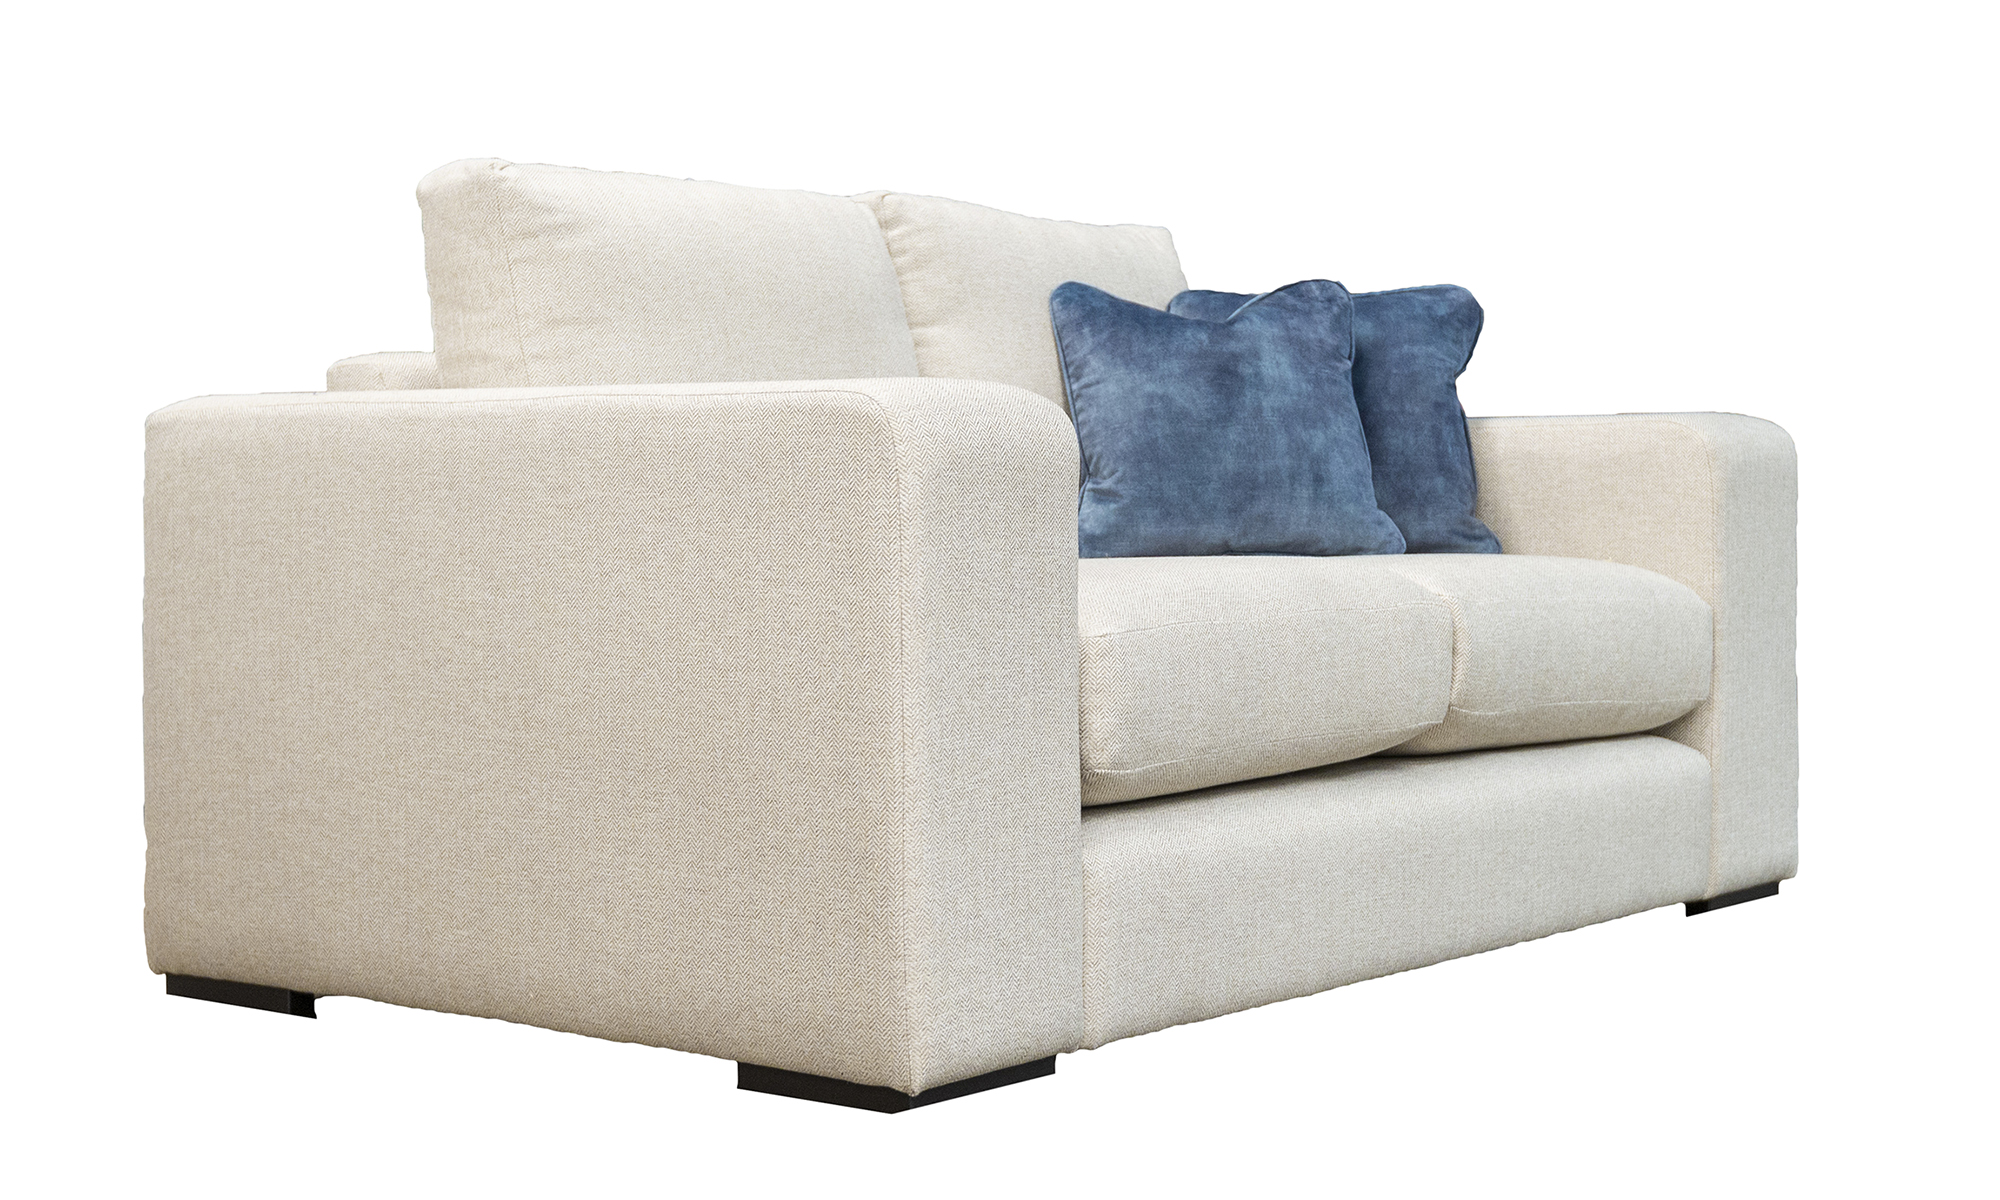 Colordao 2 Seater Sofa in Port Honey, Silver Collection Fabric